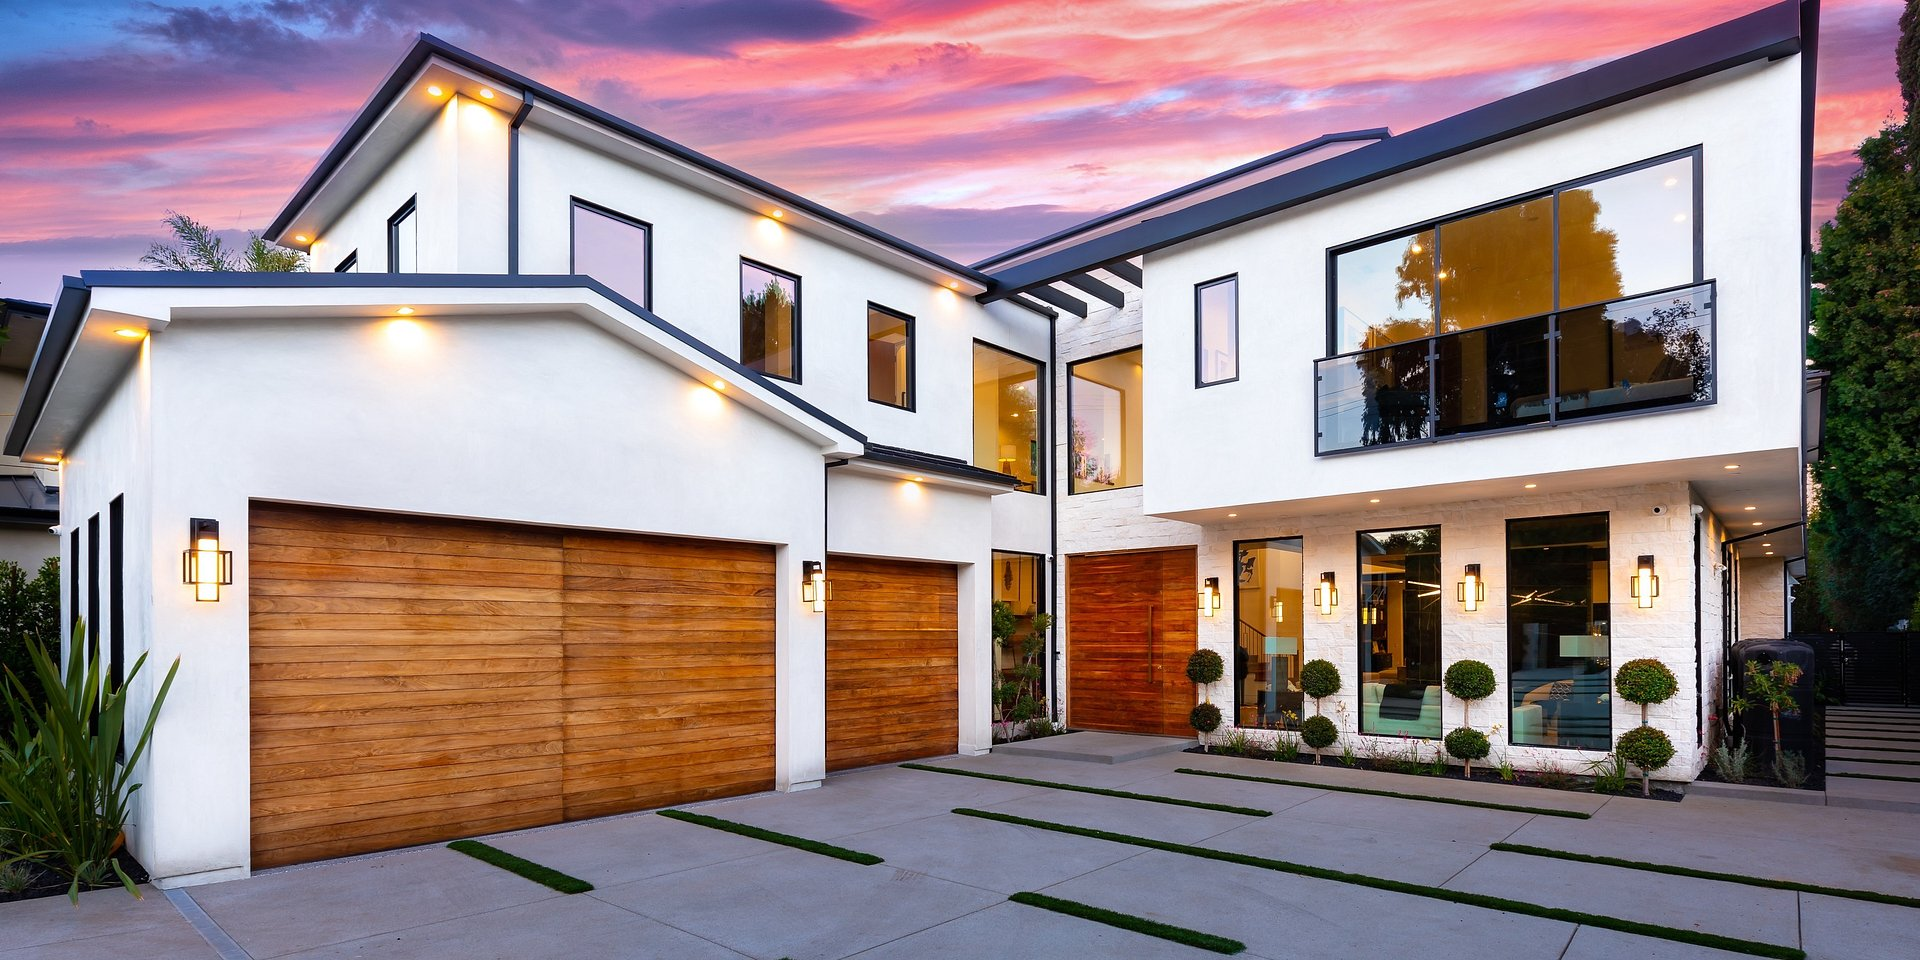 Coldwell Banker Realty Lists a New Encino Property for $5,499,950